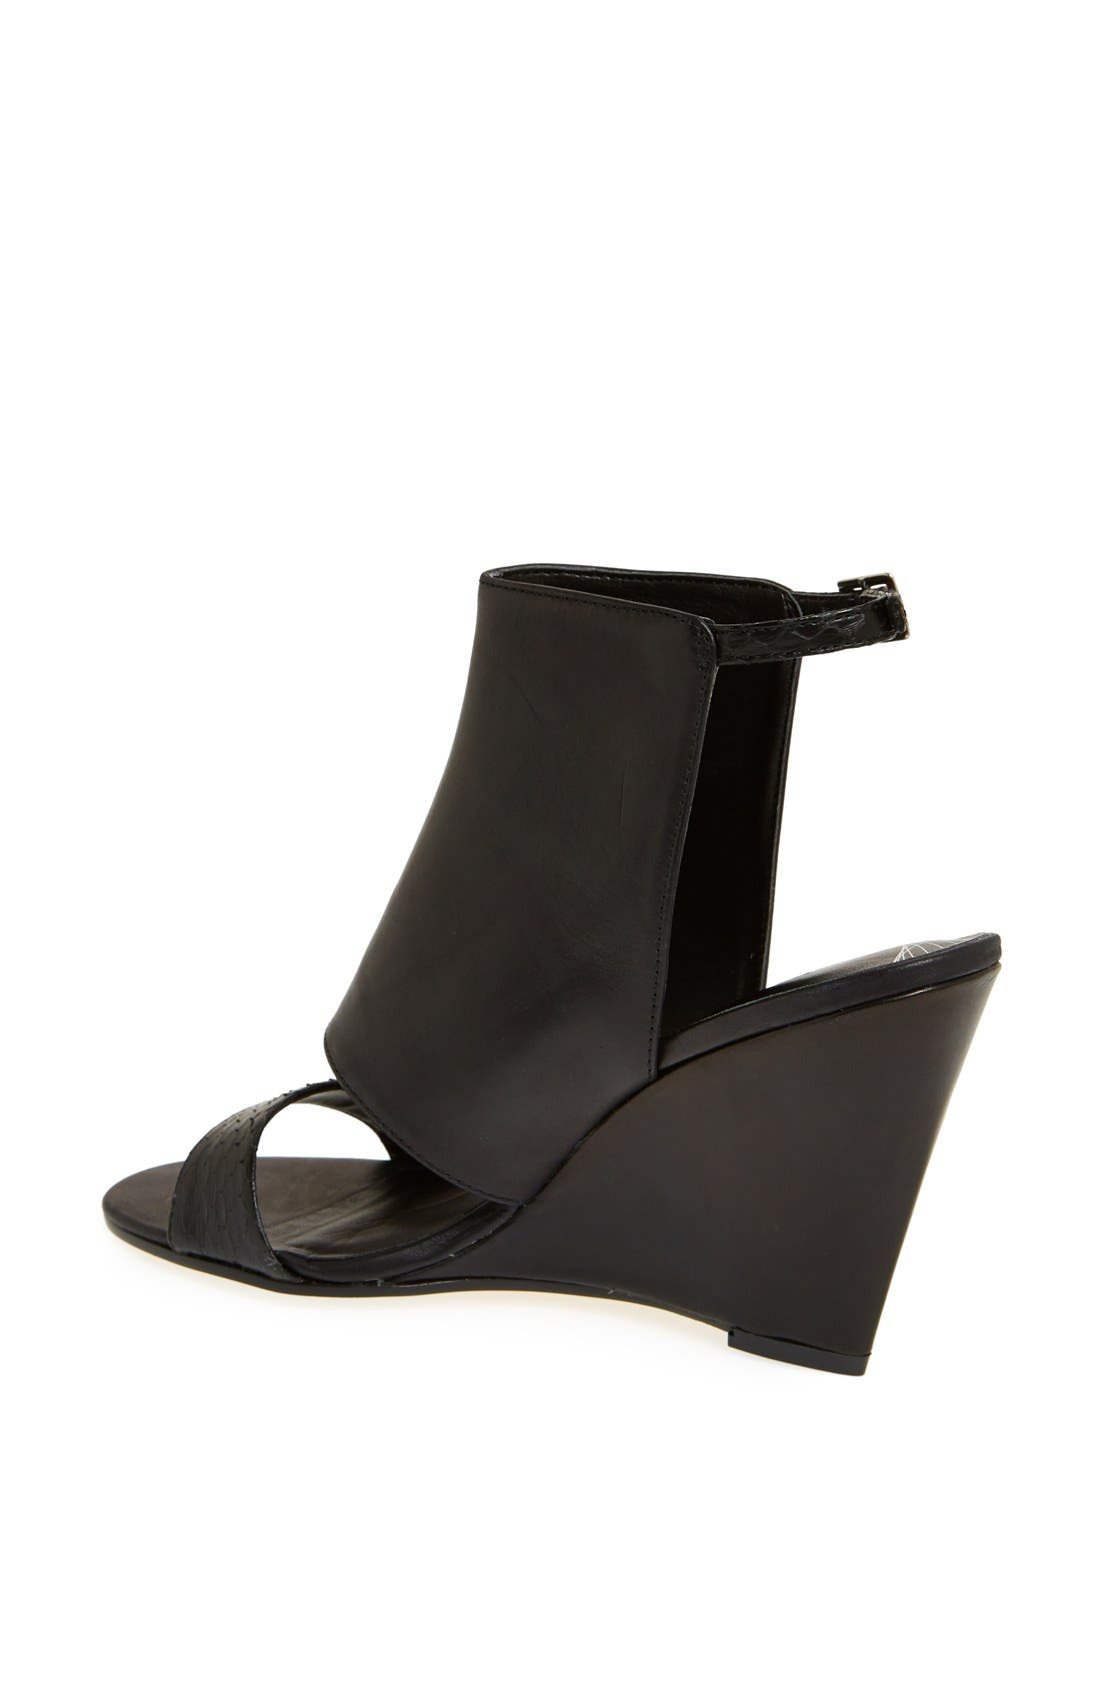 'Raley' Cuff Wedge Sandal,                             Alternate thumbnail 4, color,                             005